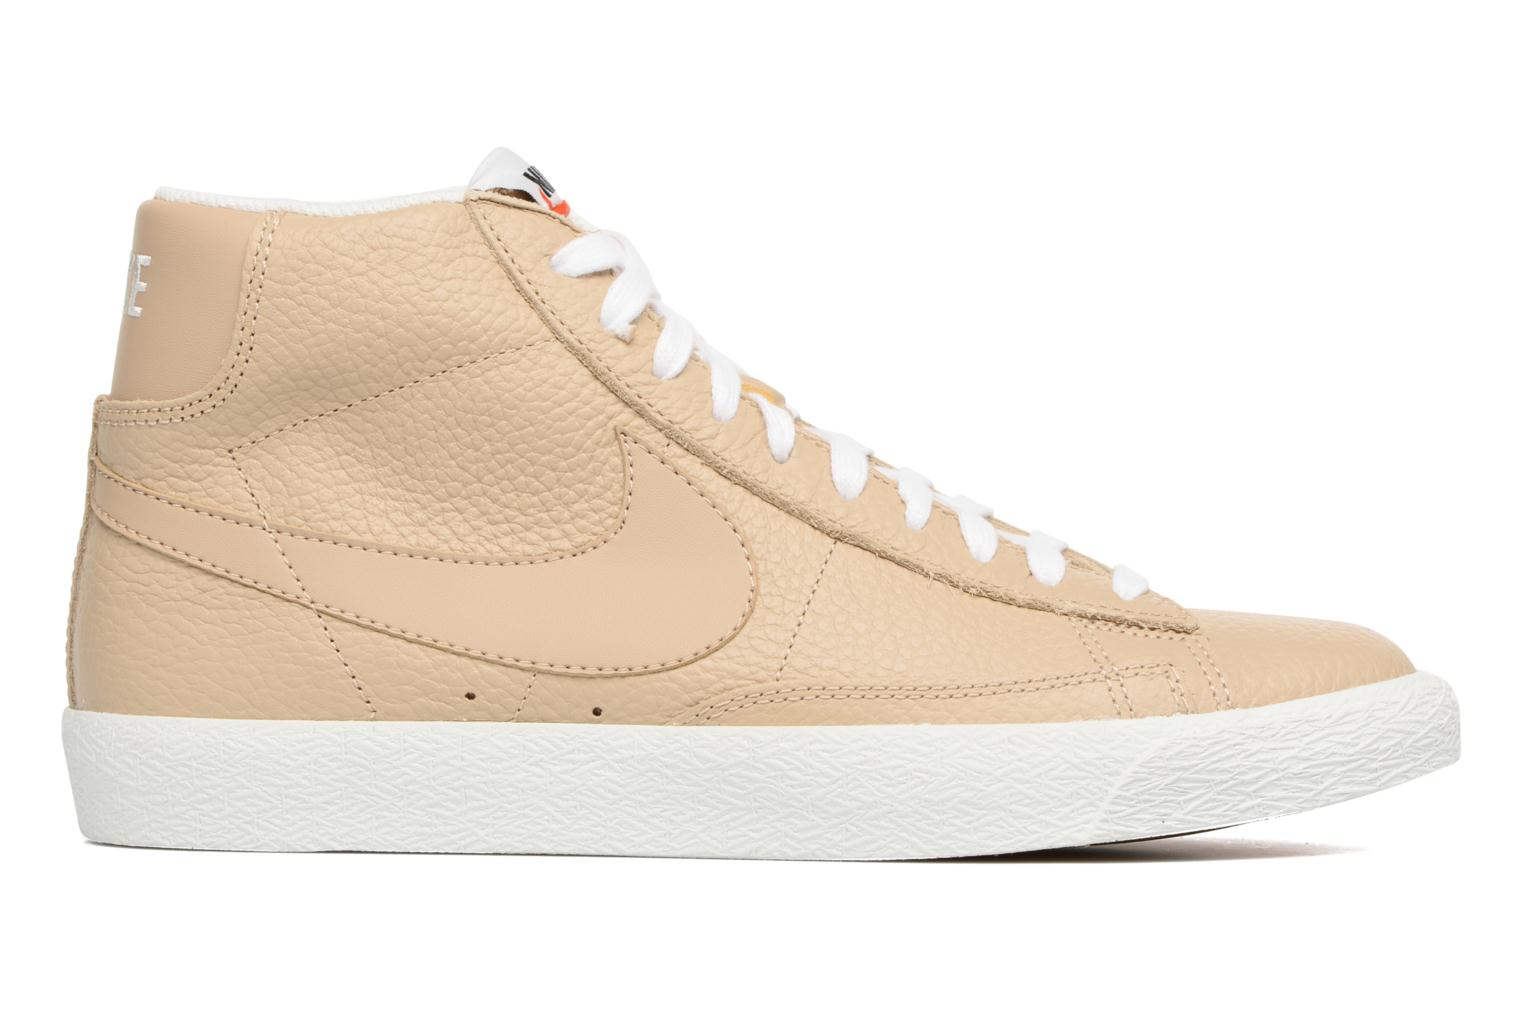 Blazer mid prm Linen/Summit White-Gum Light Brown